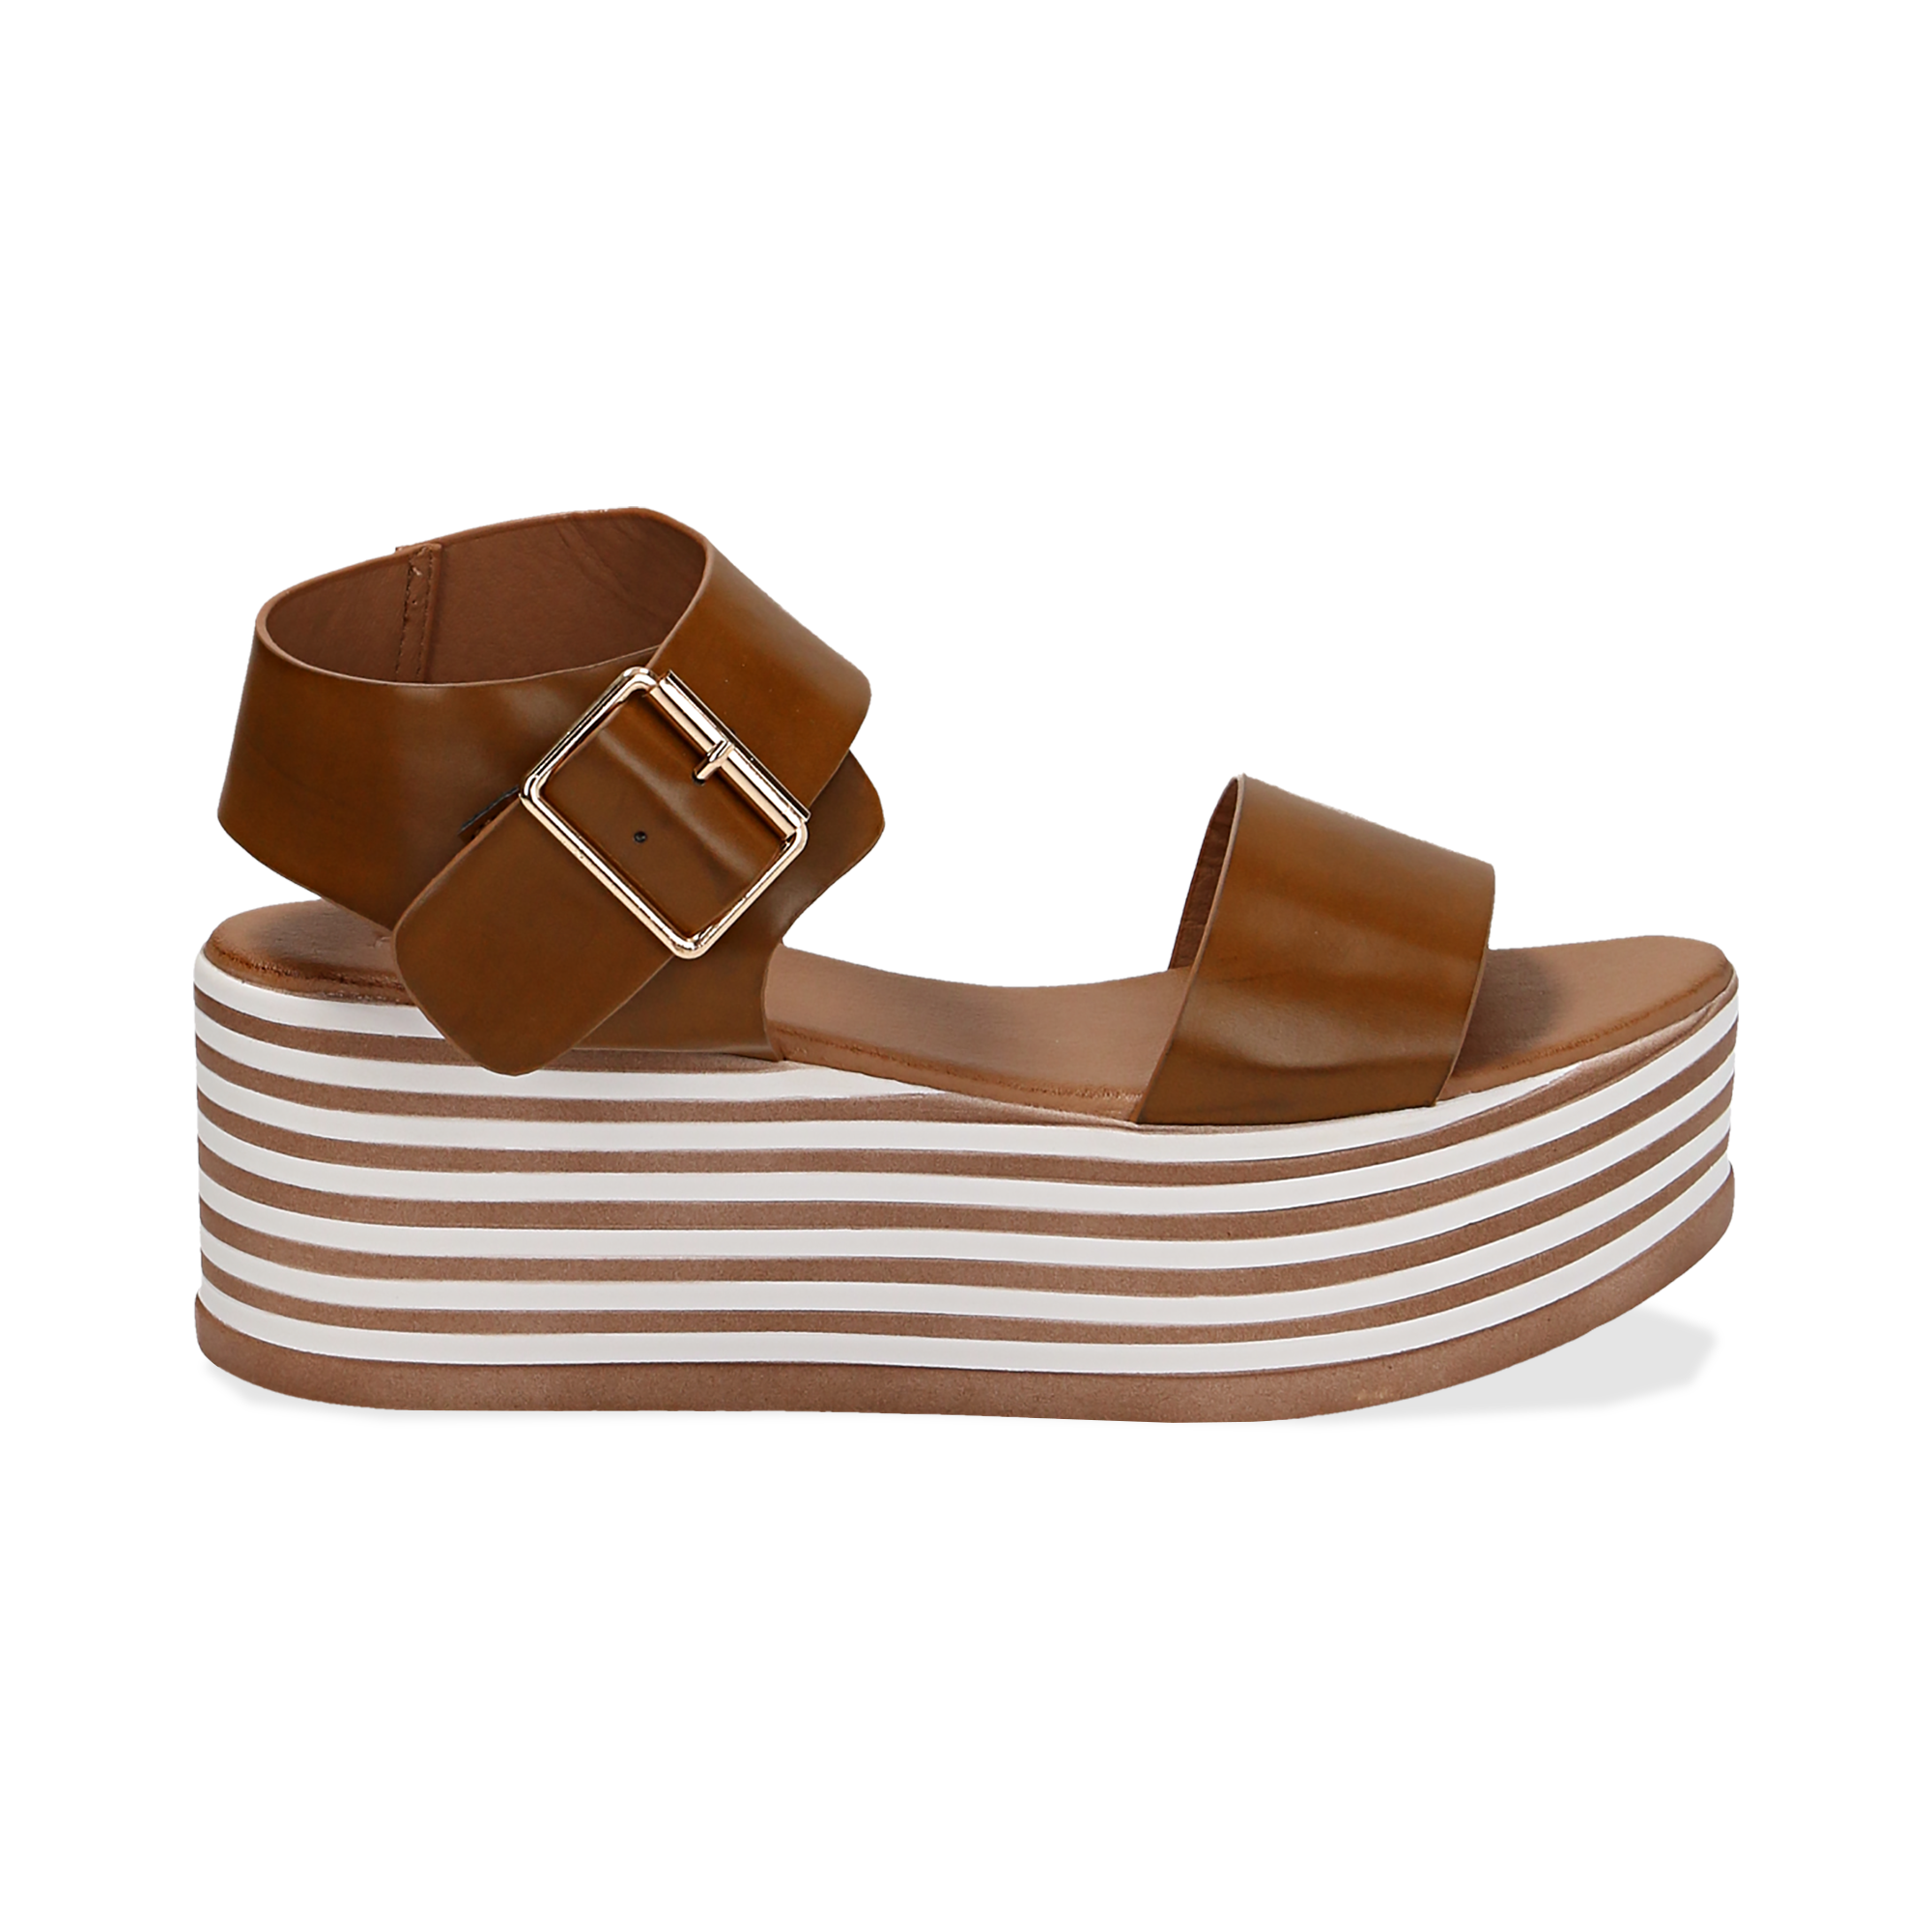 Sandali platform cuoio in eco-pelle, zeppa optical 6,50 cm